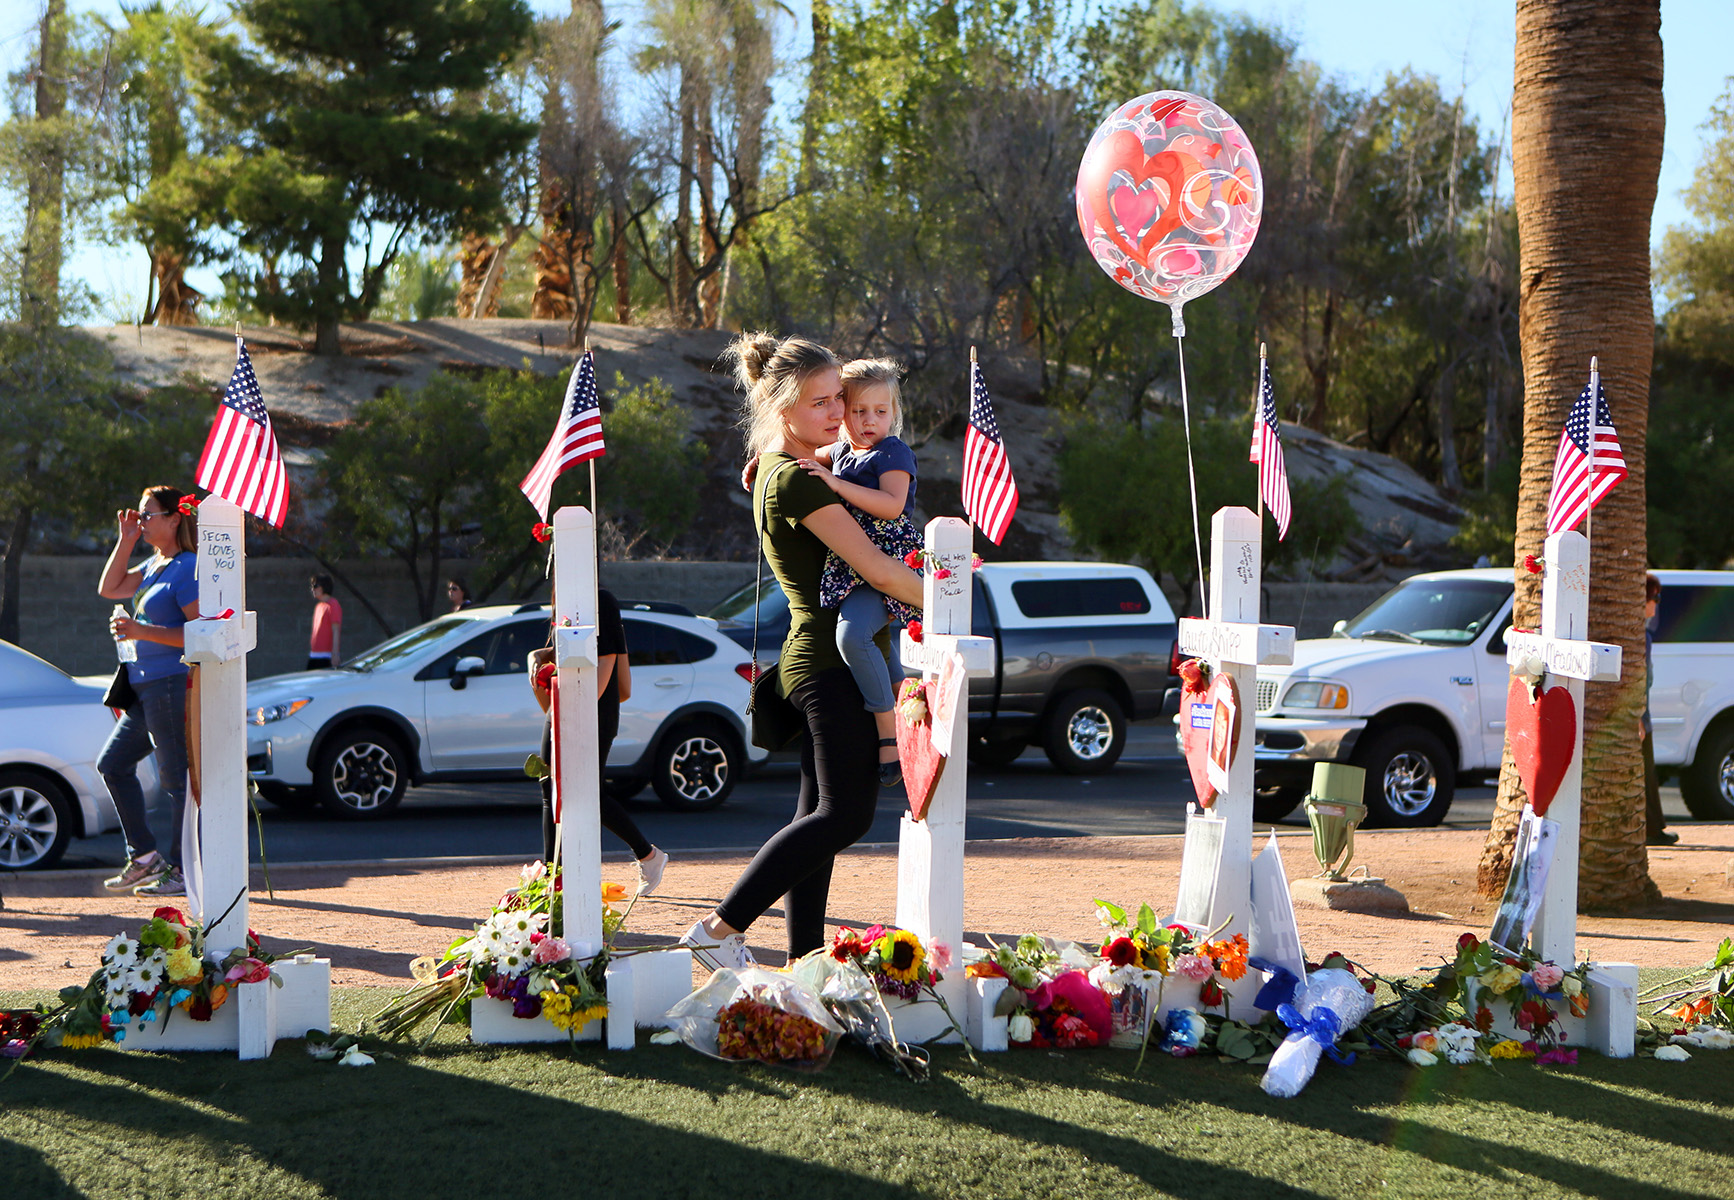 Kaitlyn Proa, center, walks with Aubrey Culbertson, 4, as they pay their respects for the slain victims of the Route 91 Harvest music festival mass shooting at a memorial erected on Las Vegas Boulevard next to the historic Welcome to Las Vegas sign.